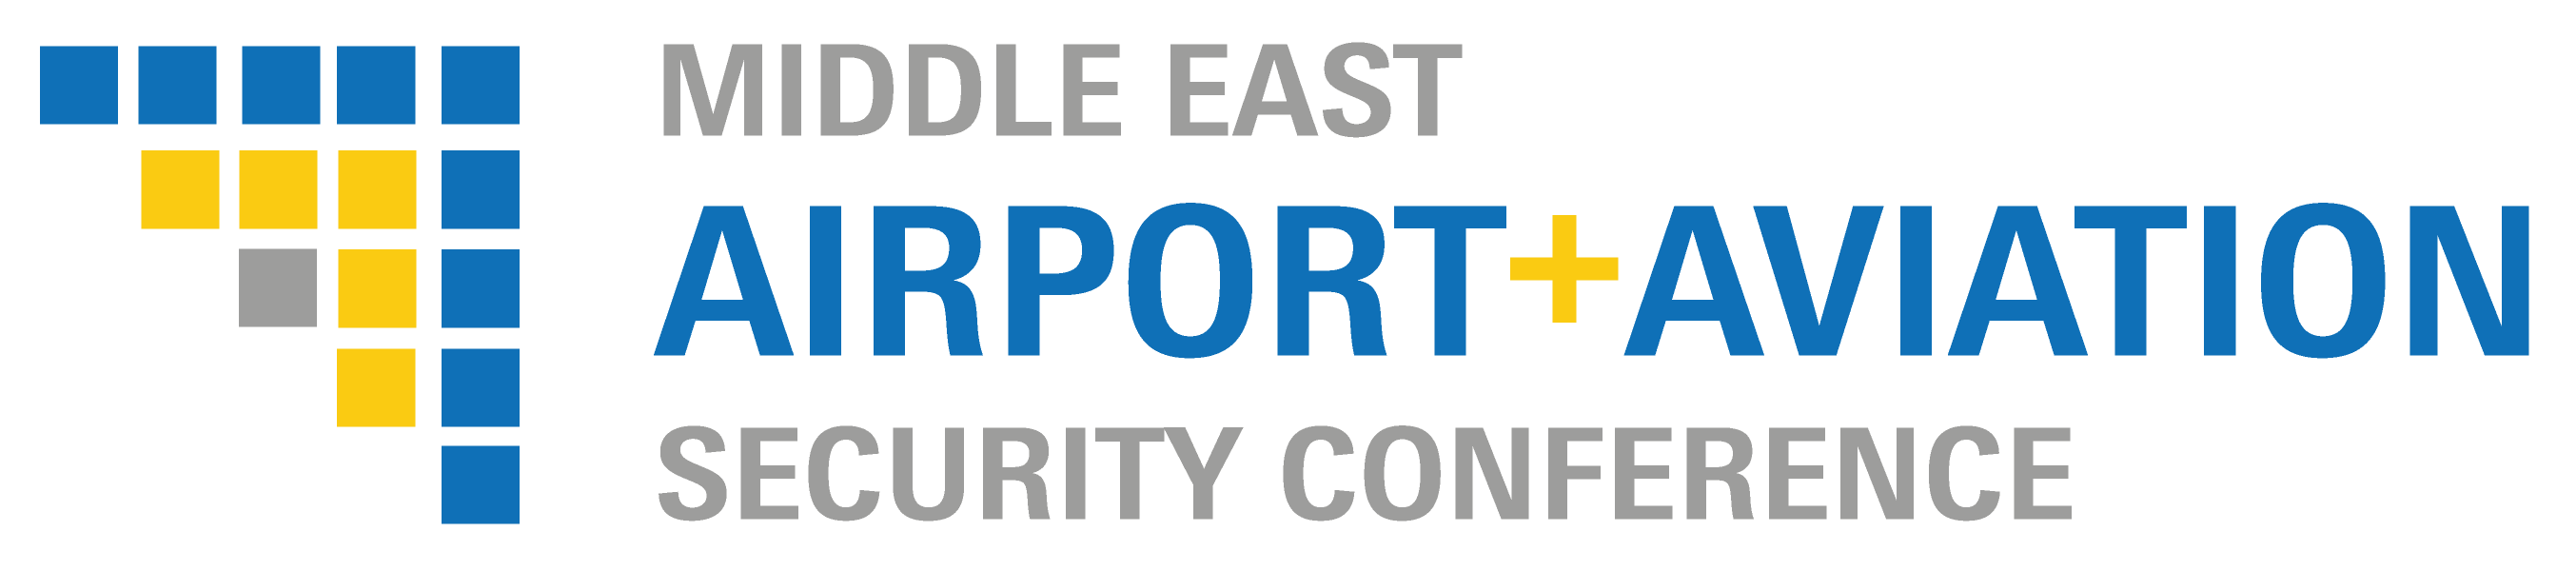 Middle East Airport and Aviation Security Conference